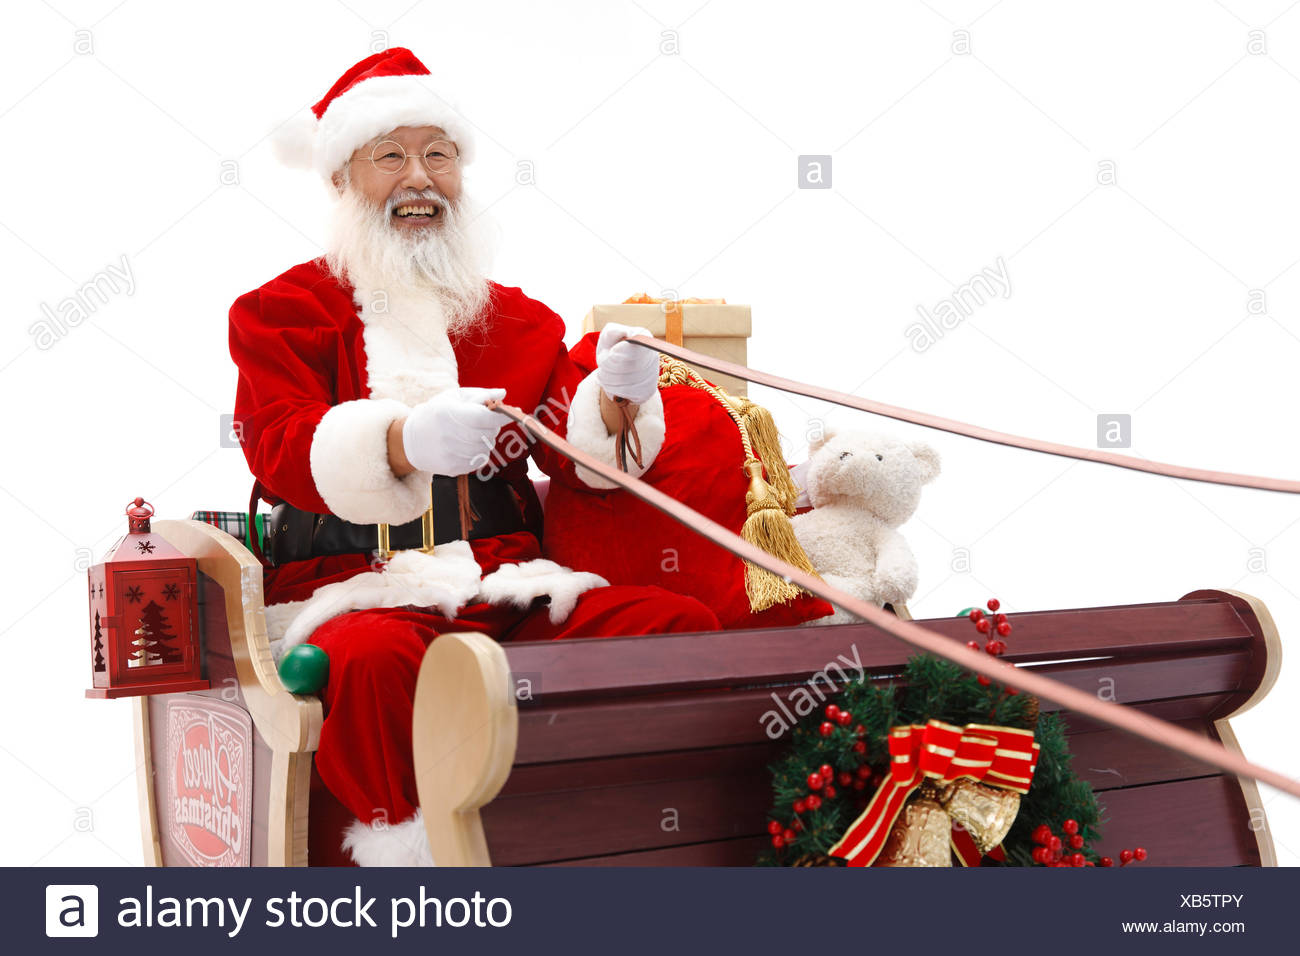 Santa rides the sled to send a gift - Stock Image